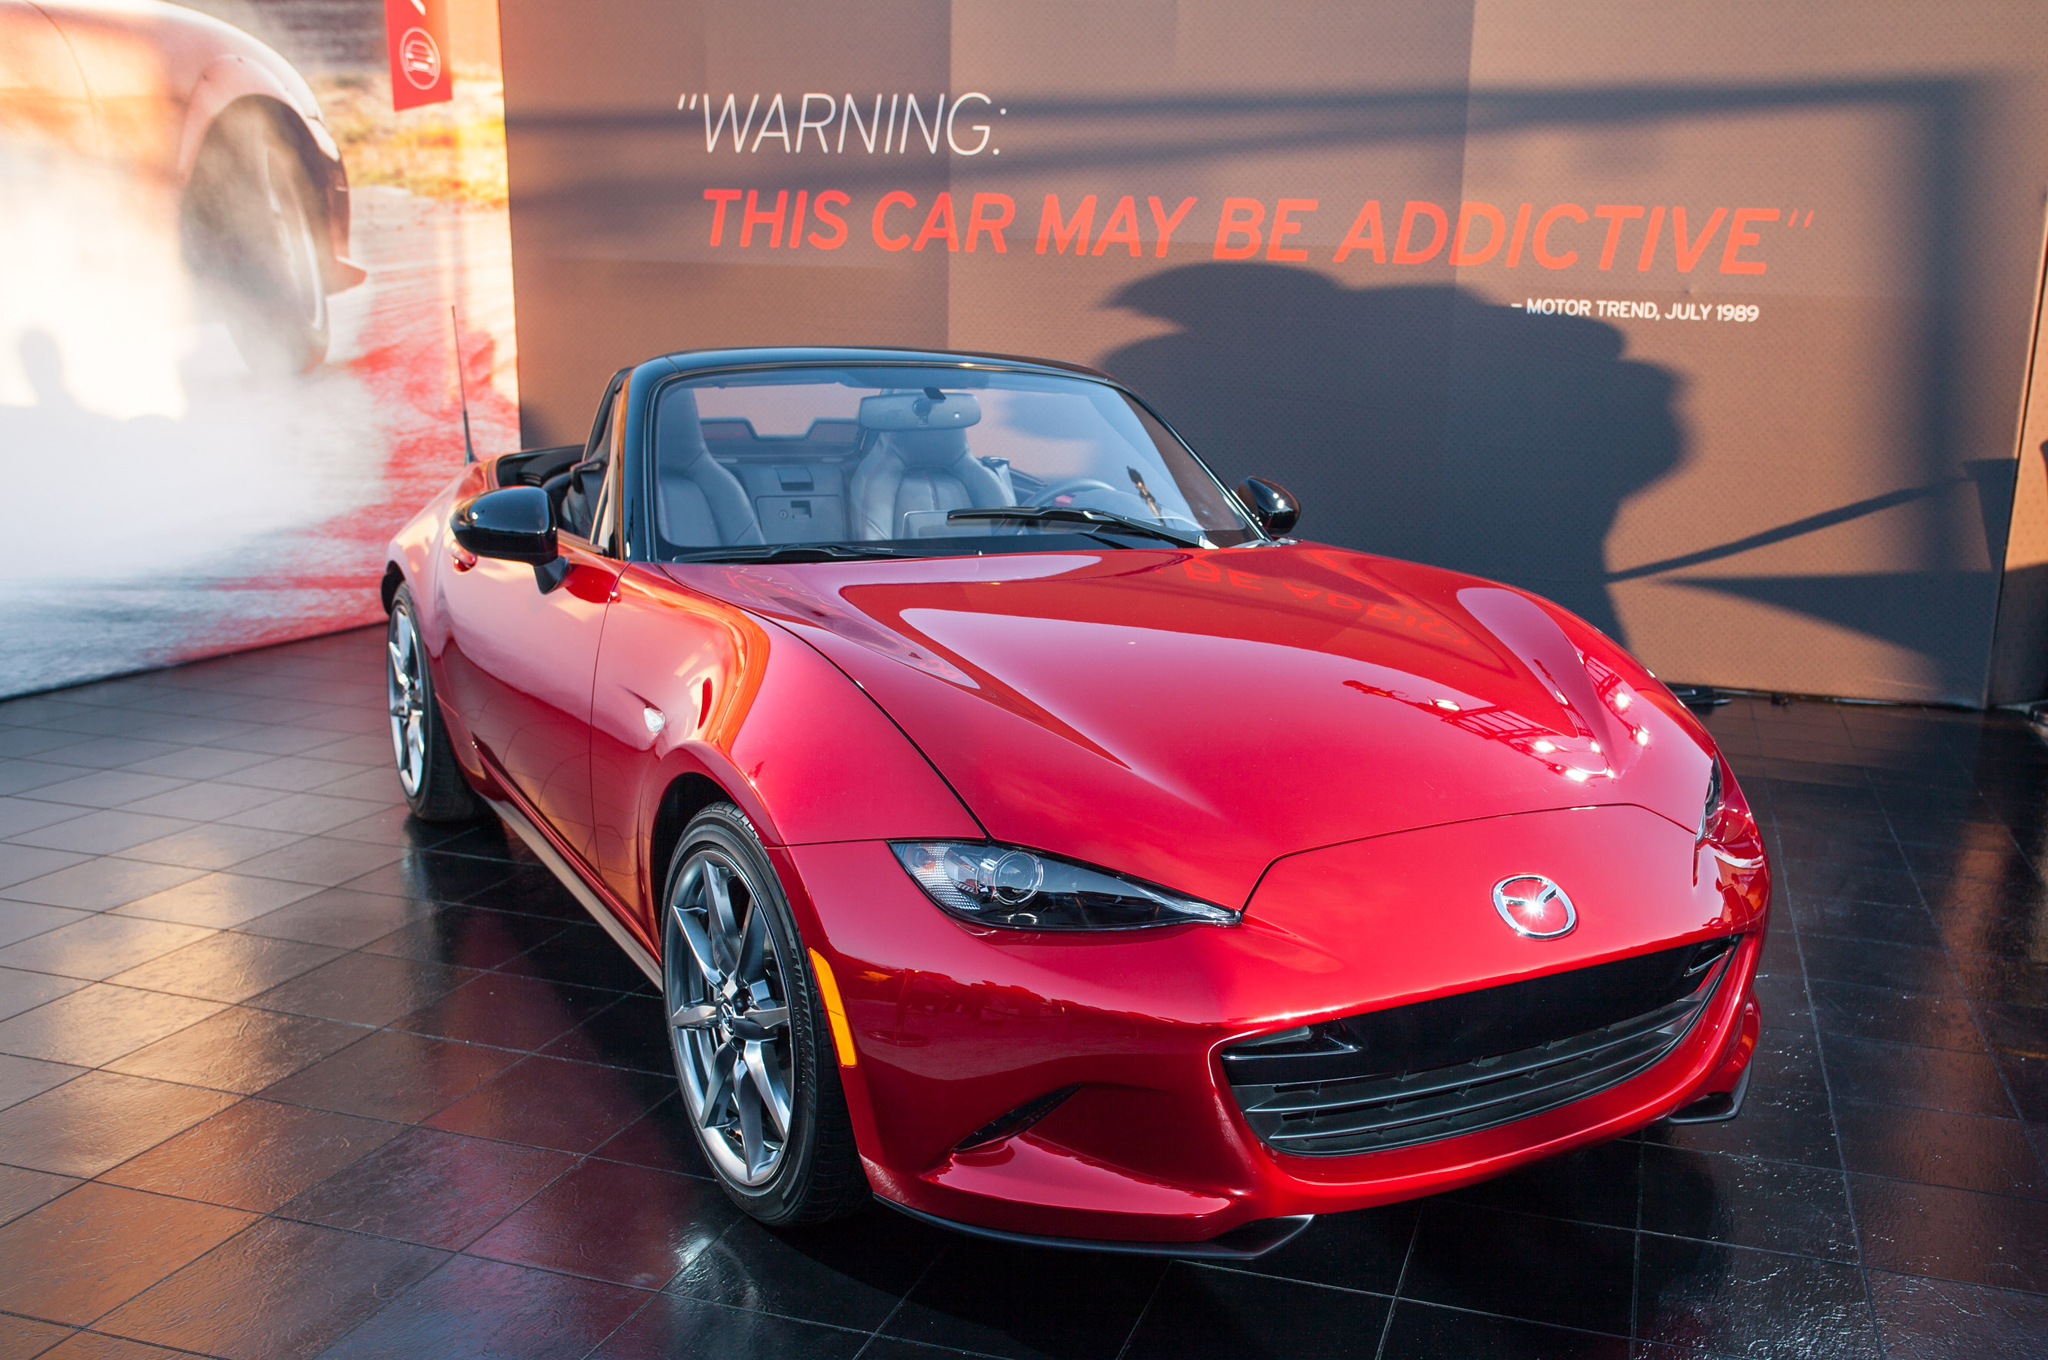 http://blogmedia.dealerfire.com/wp-content/uploads/sites/244/2015/04/Mazda-5-kicks-off-production-of-new-roadster.jpg